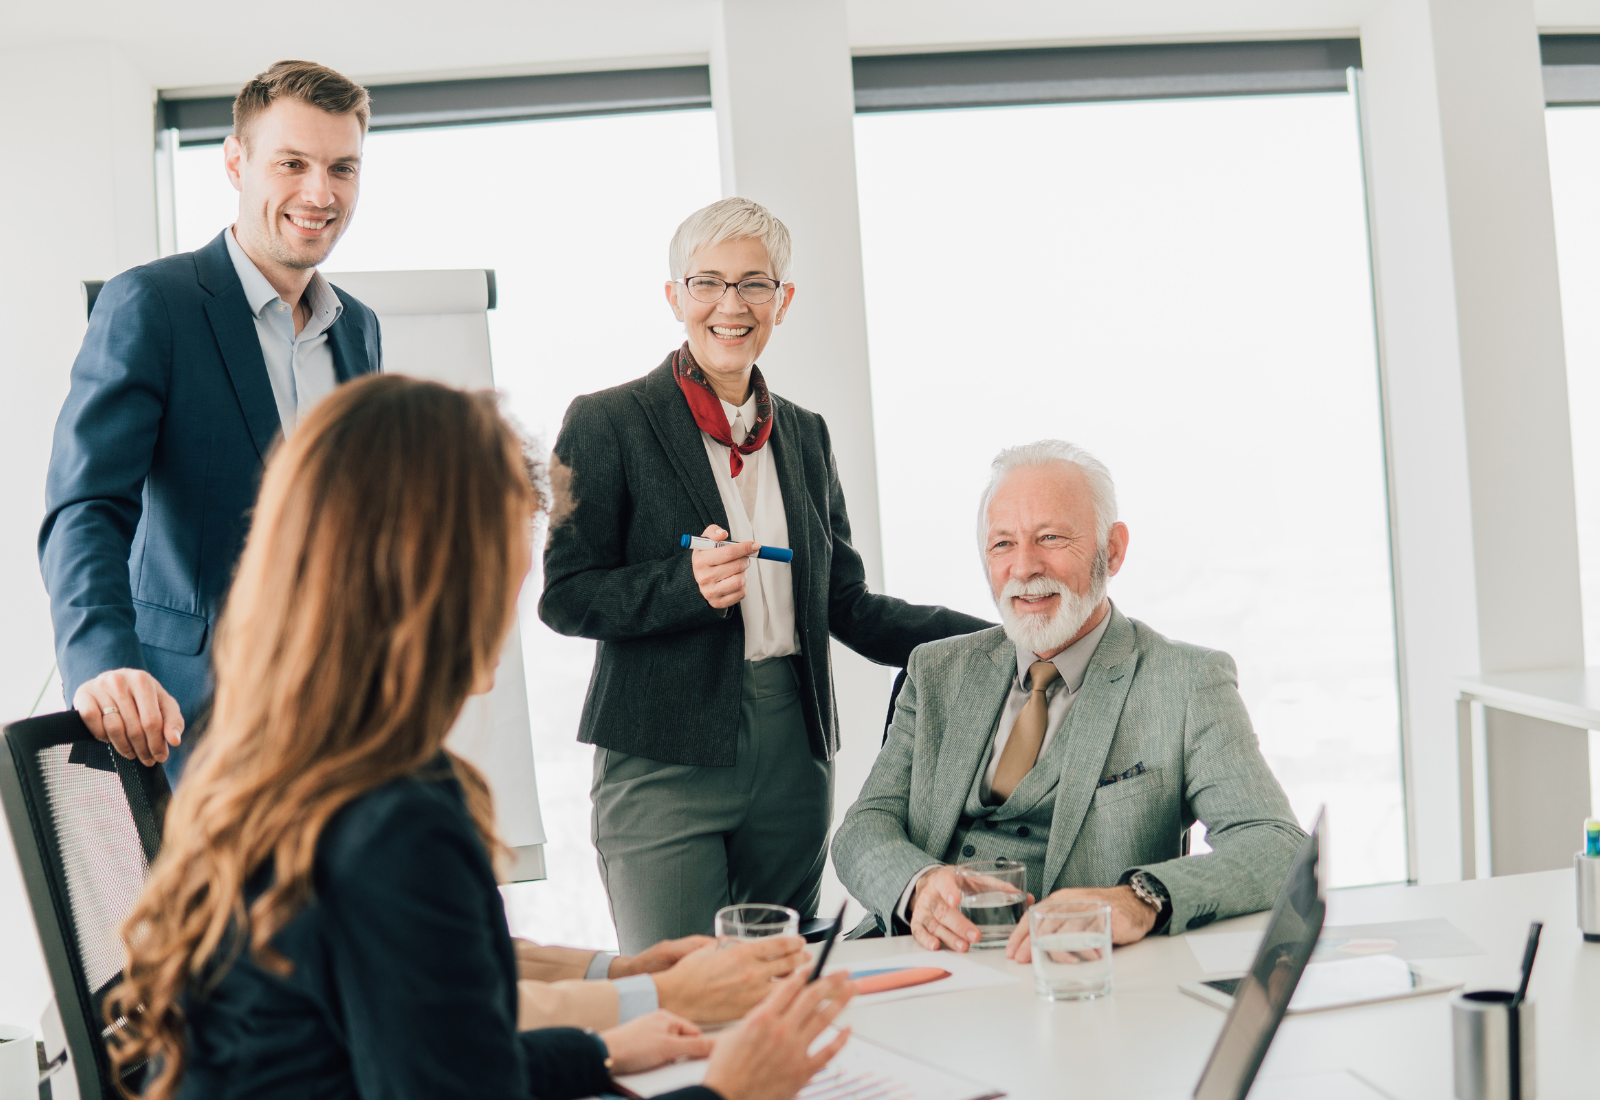 How to find a Corporate Culture that fits your Values at Any Age